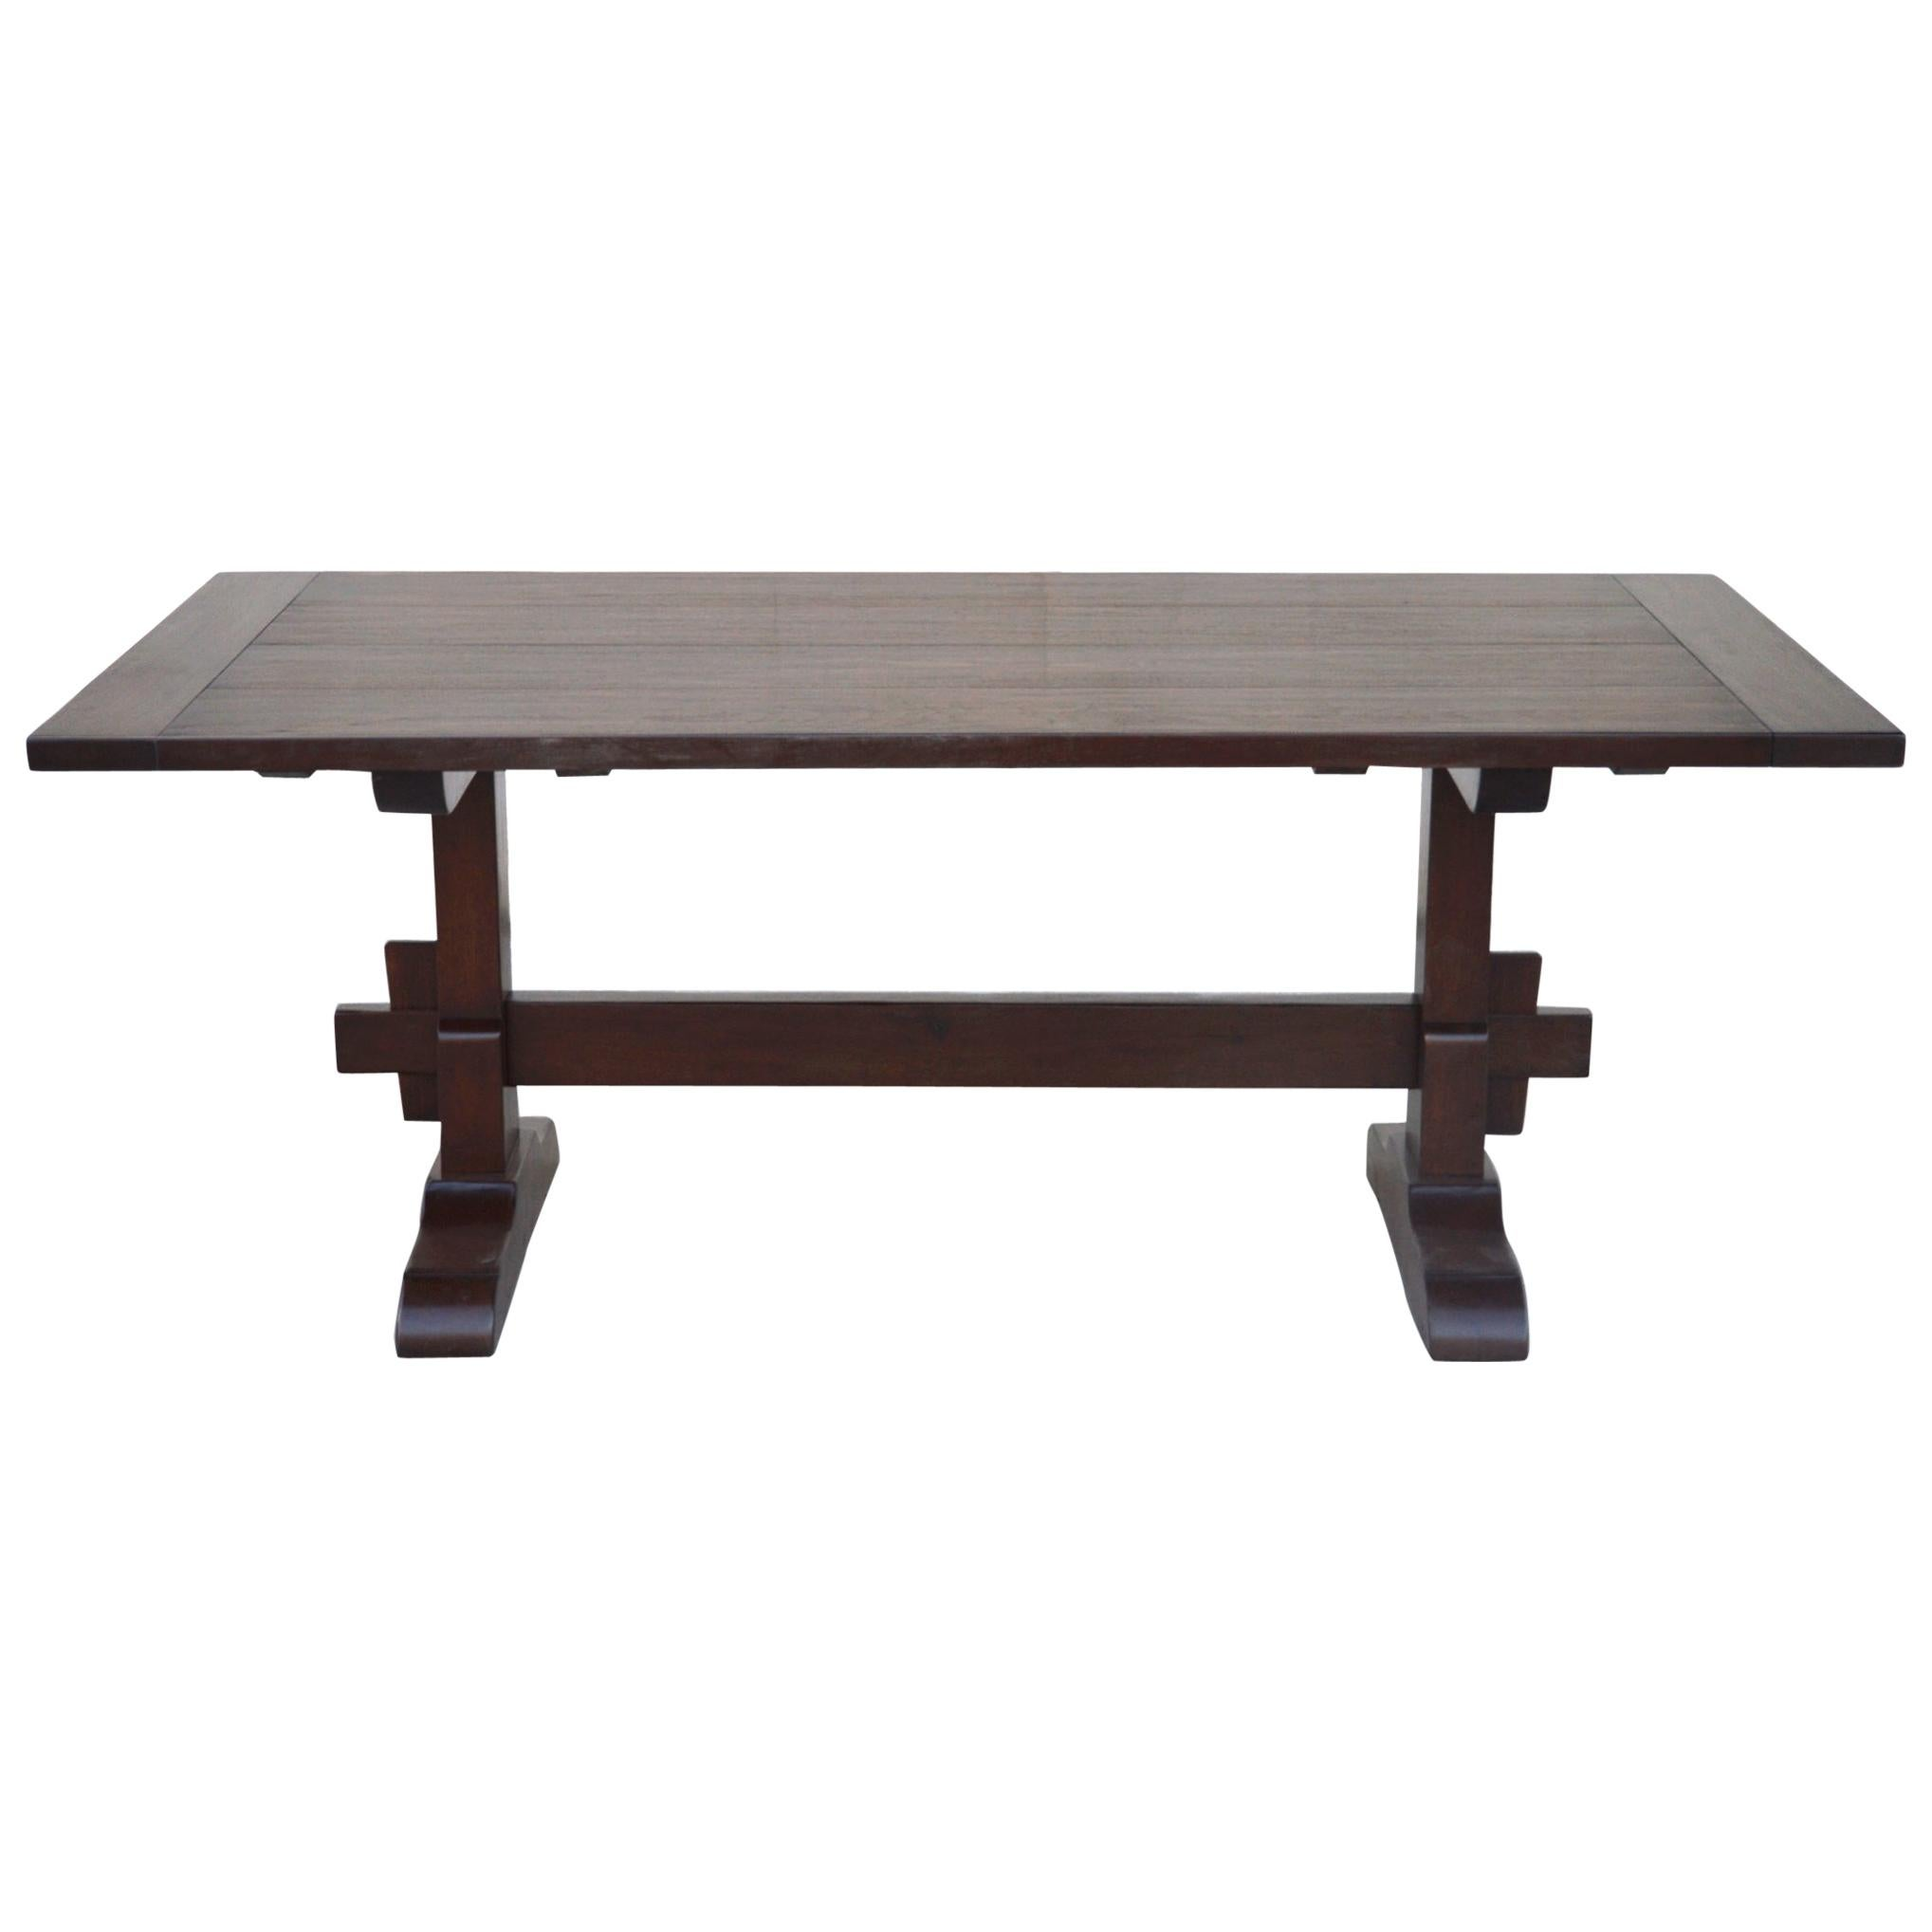 Expandable Walnut Trestle Table, Built to Order by Petersen Antiques